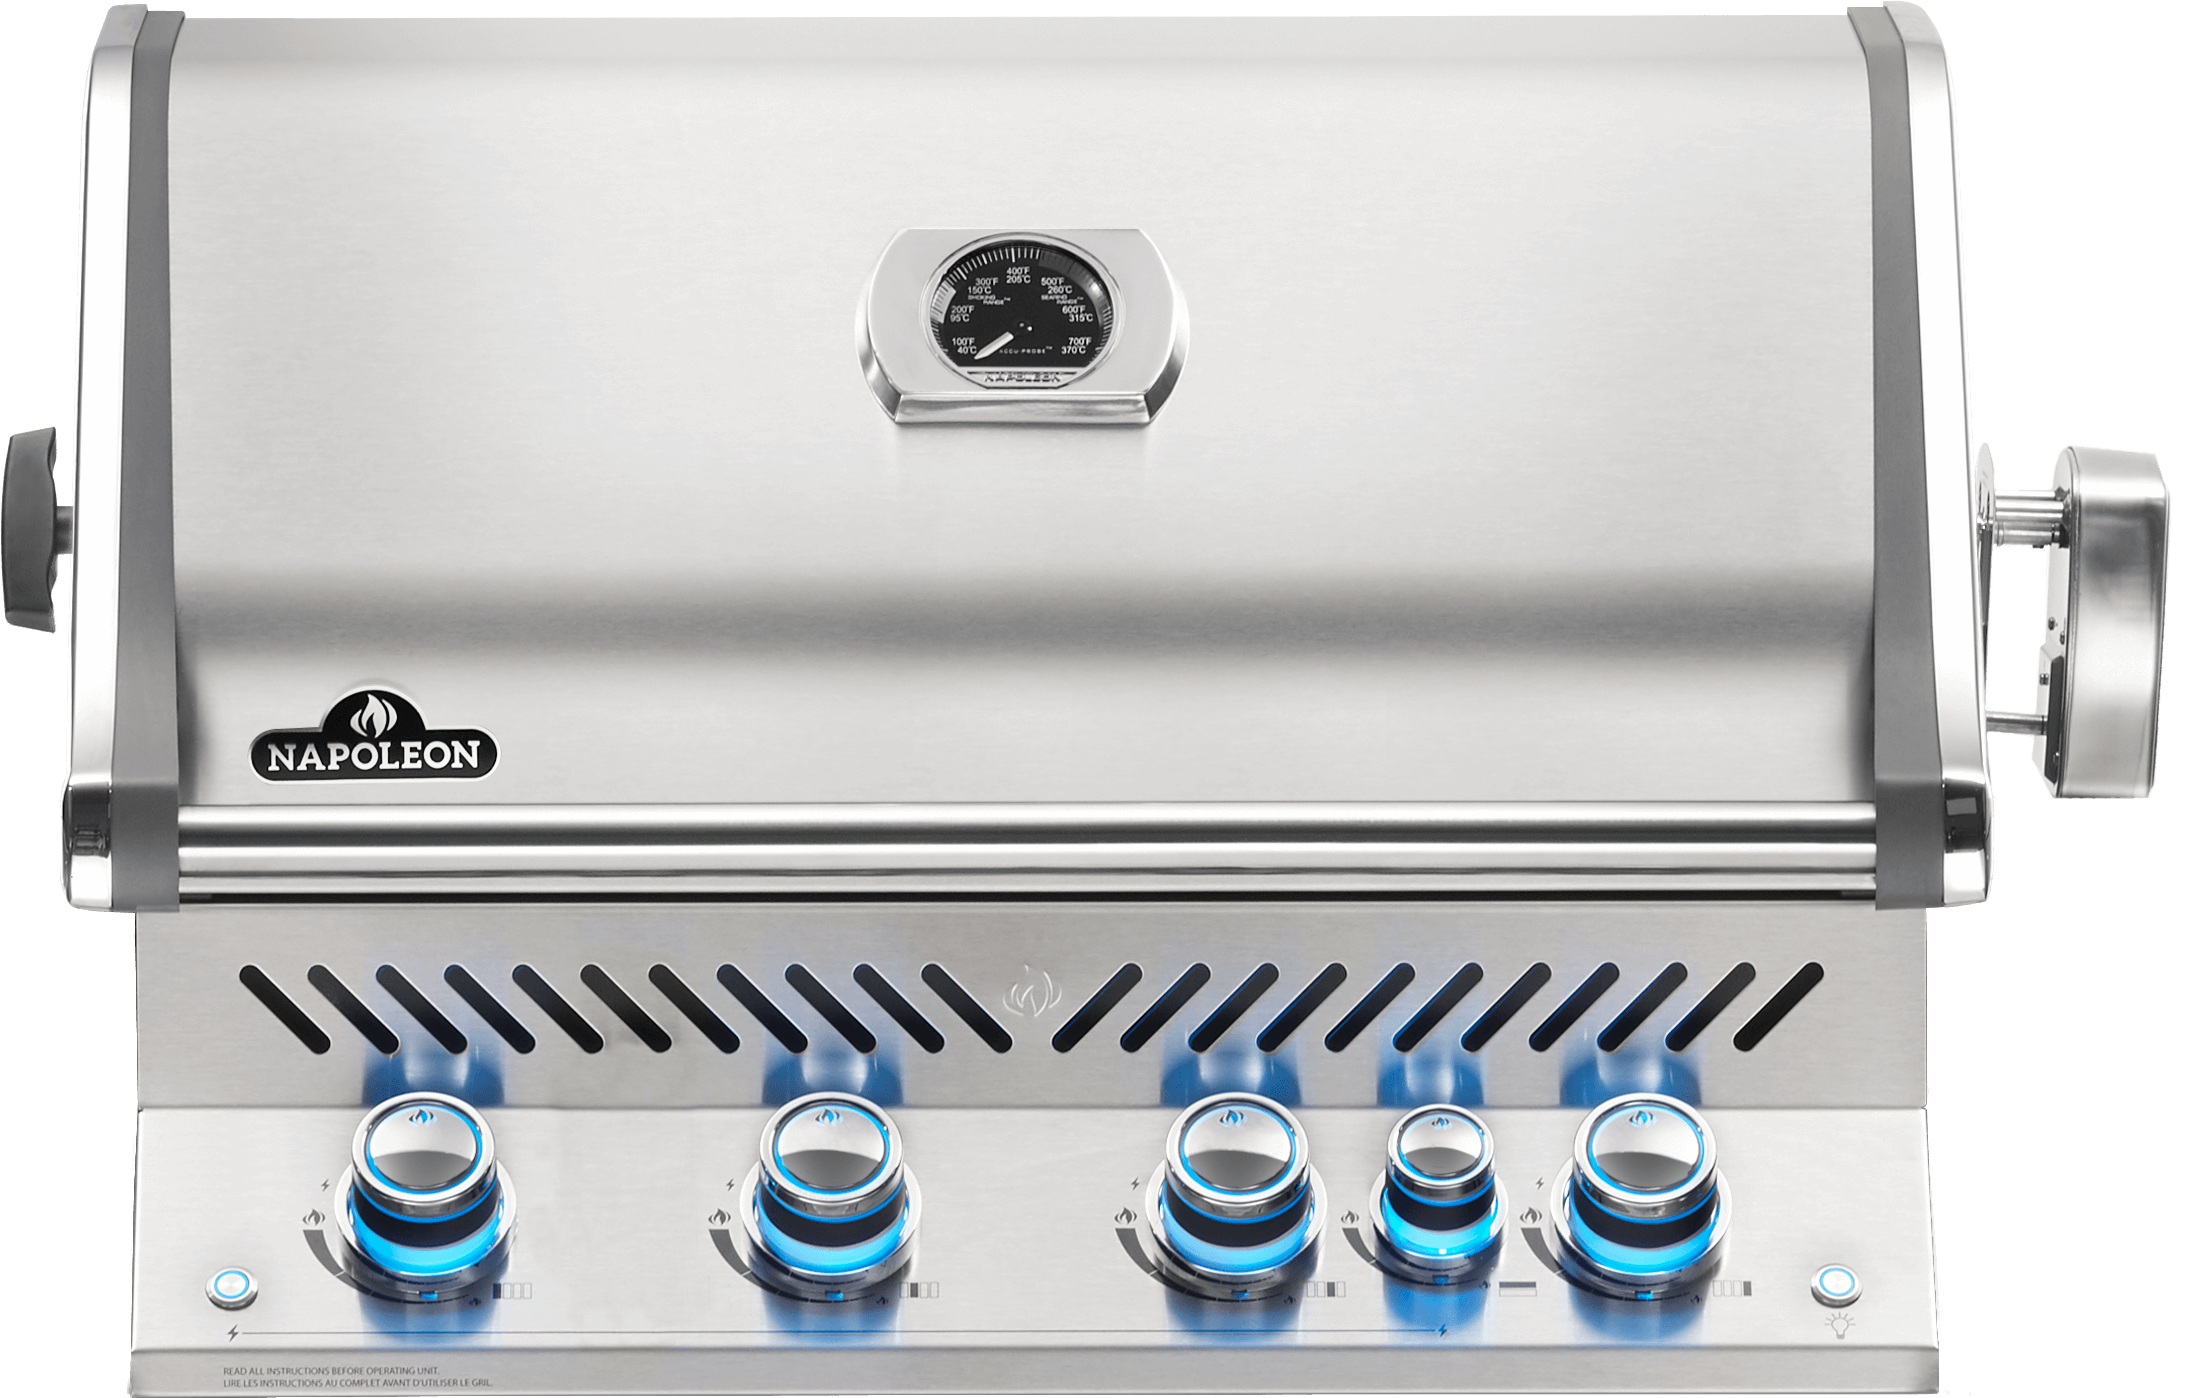 Built-in Prestige PRO™ 500 Propane Gas Grill Head with Infrared Rear Burner, Stainless Steel